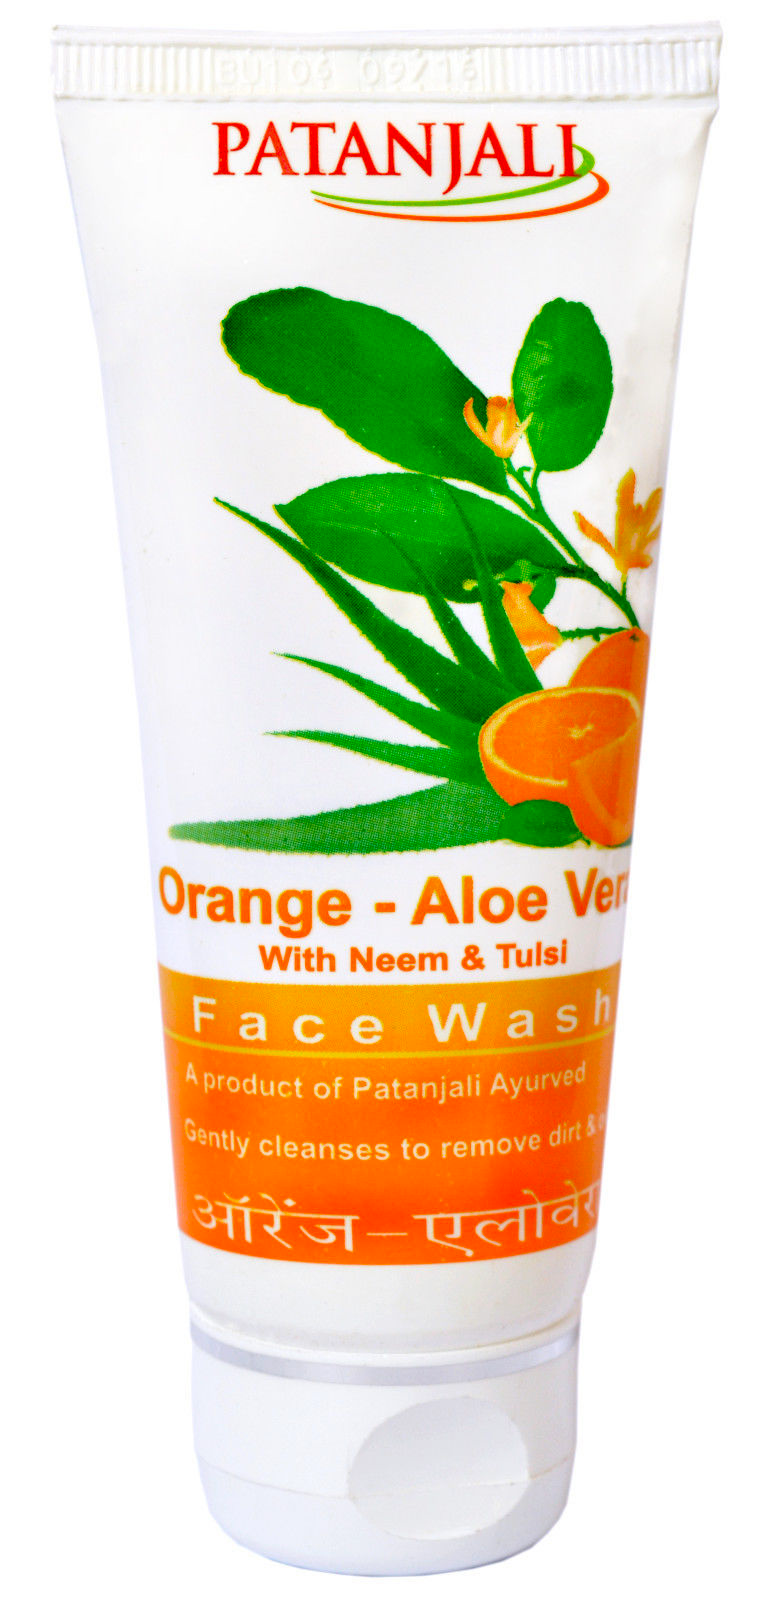 PATANJALI ORANGE ALOEVERA FACE WASH_1